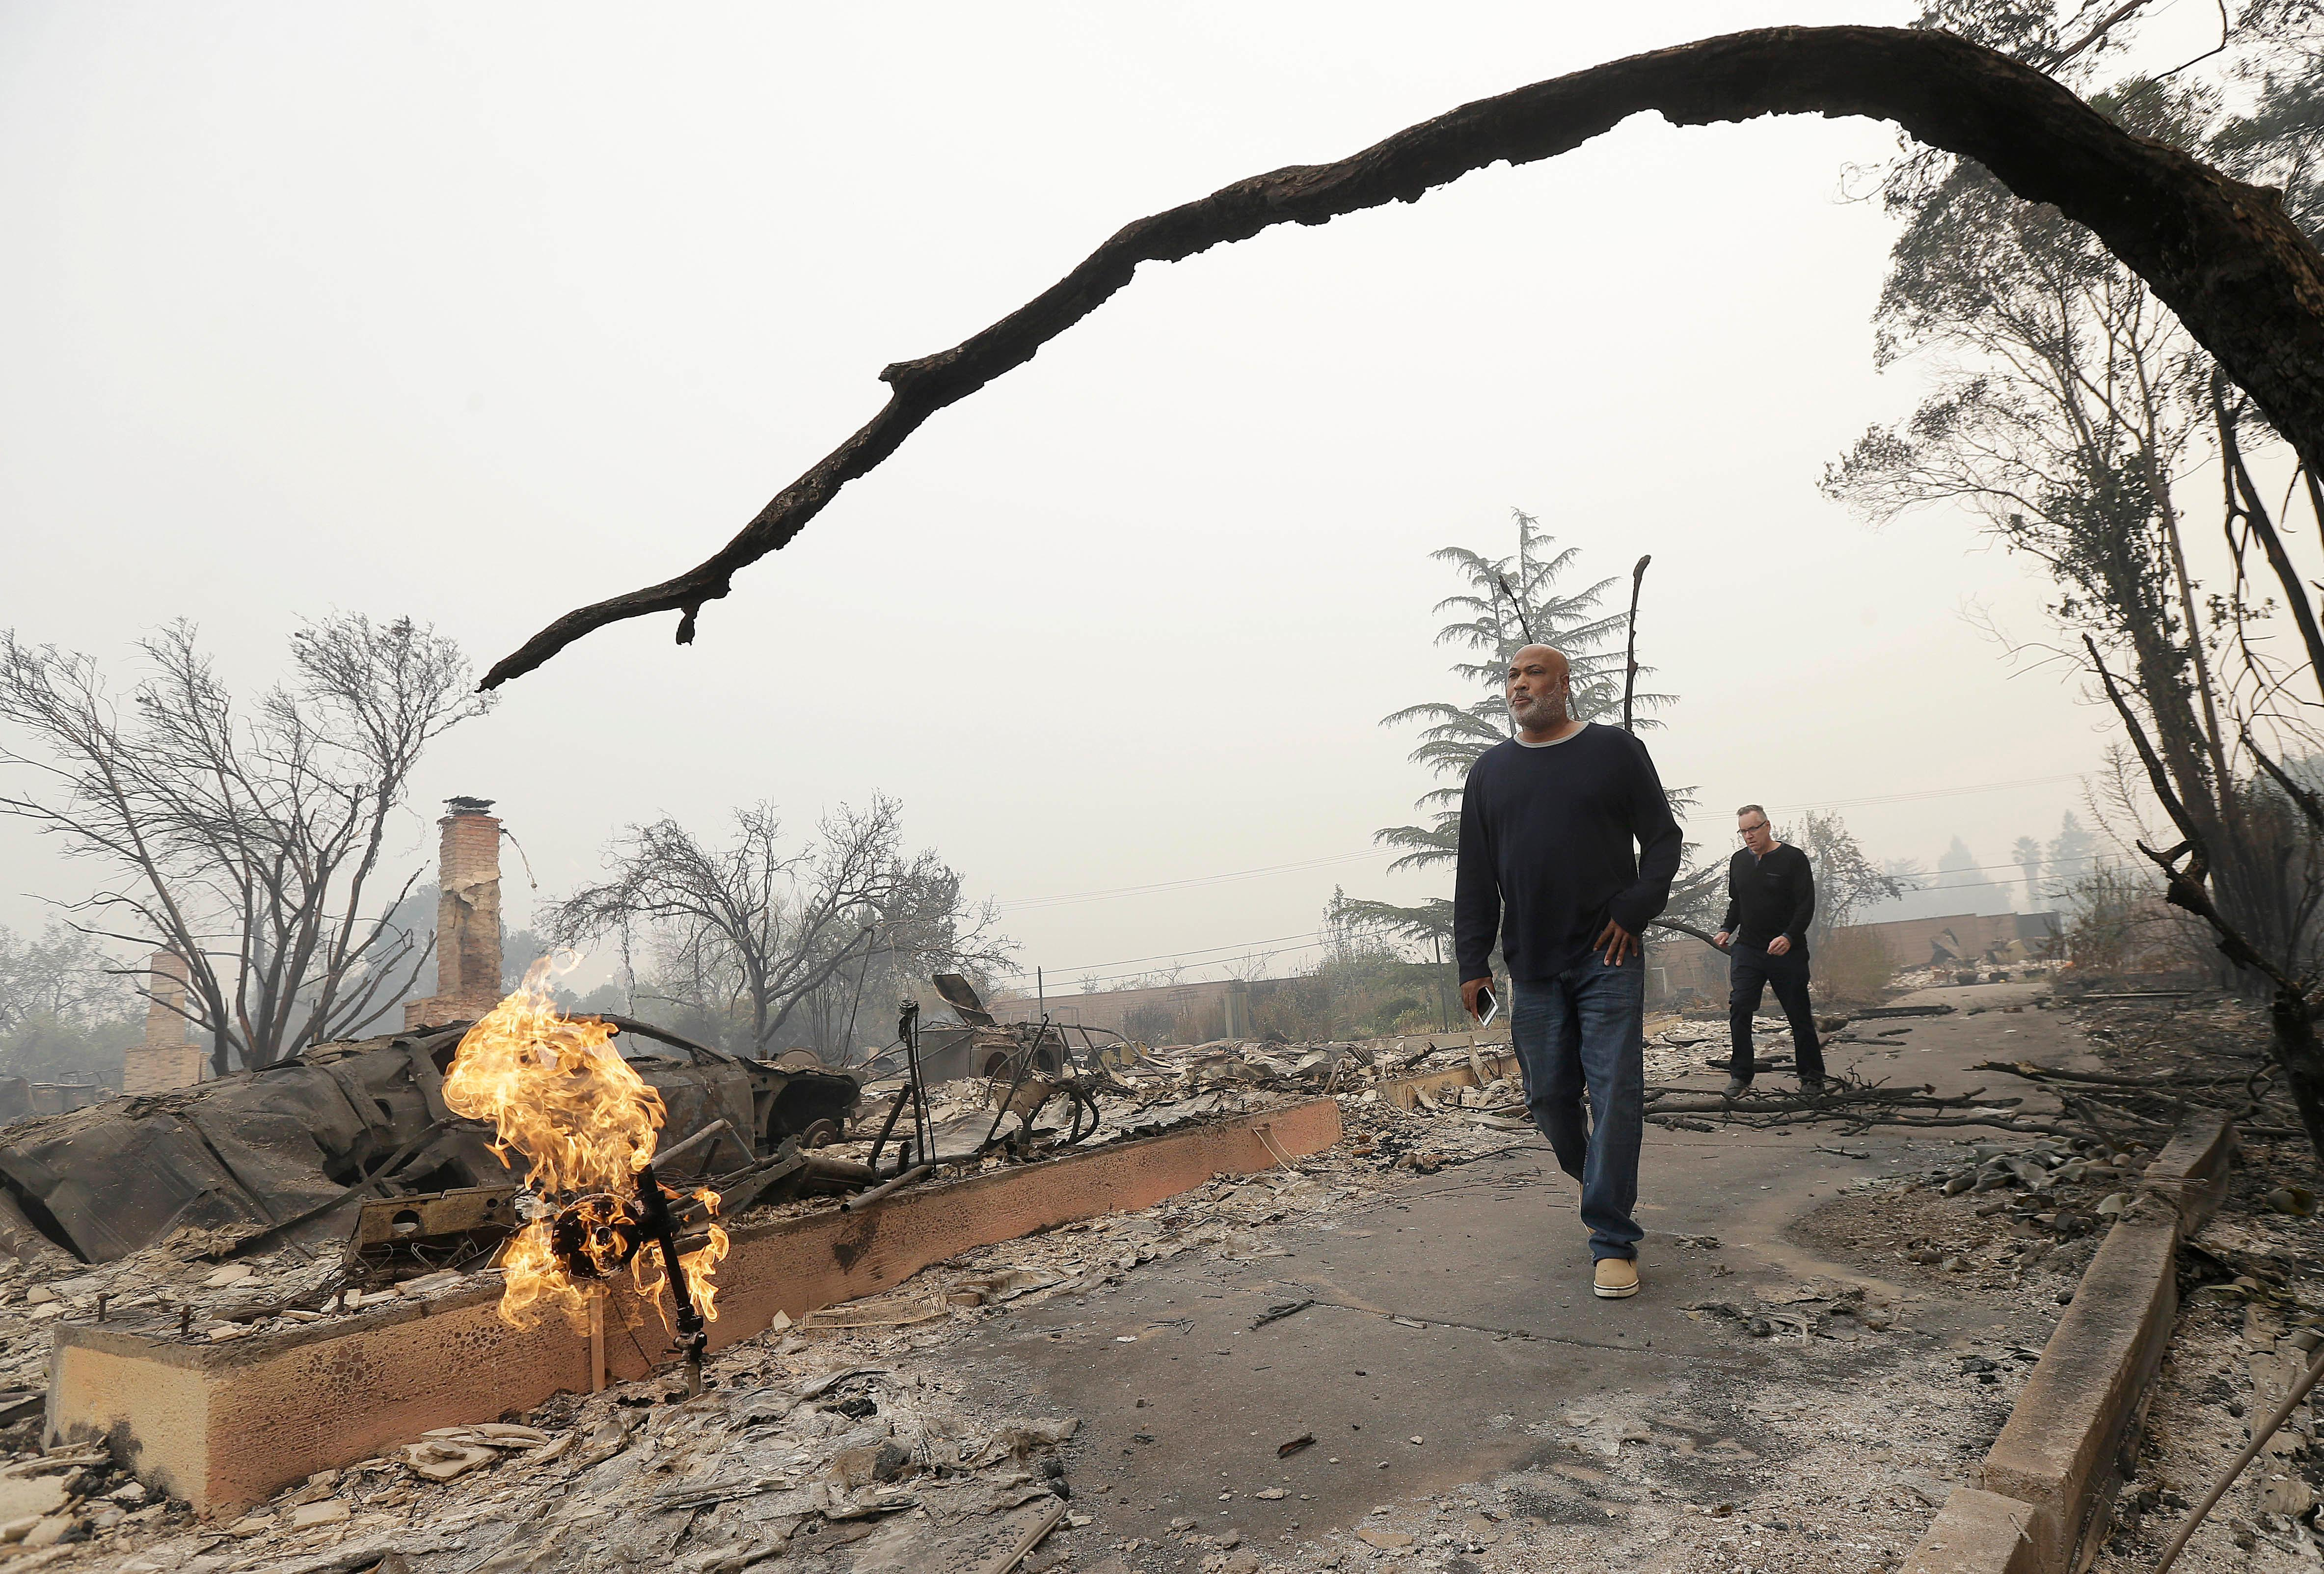 Darrel Spain, center, and his husband Mark Papale walk along a path where their house was destroyed from fires as they look for their missing cat in Kenwood, Calif., Tuesday, Oct. 10, 2017. (AP Photo/Jeff Chiu)